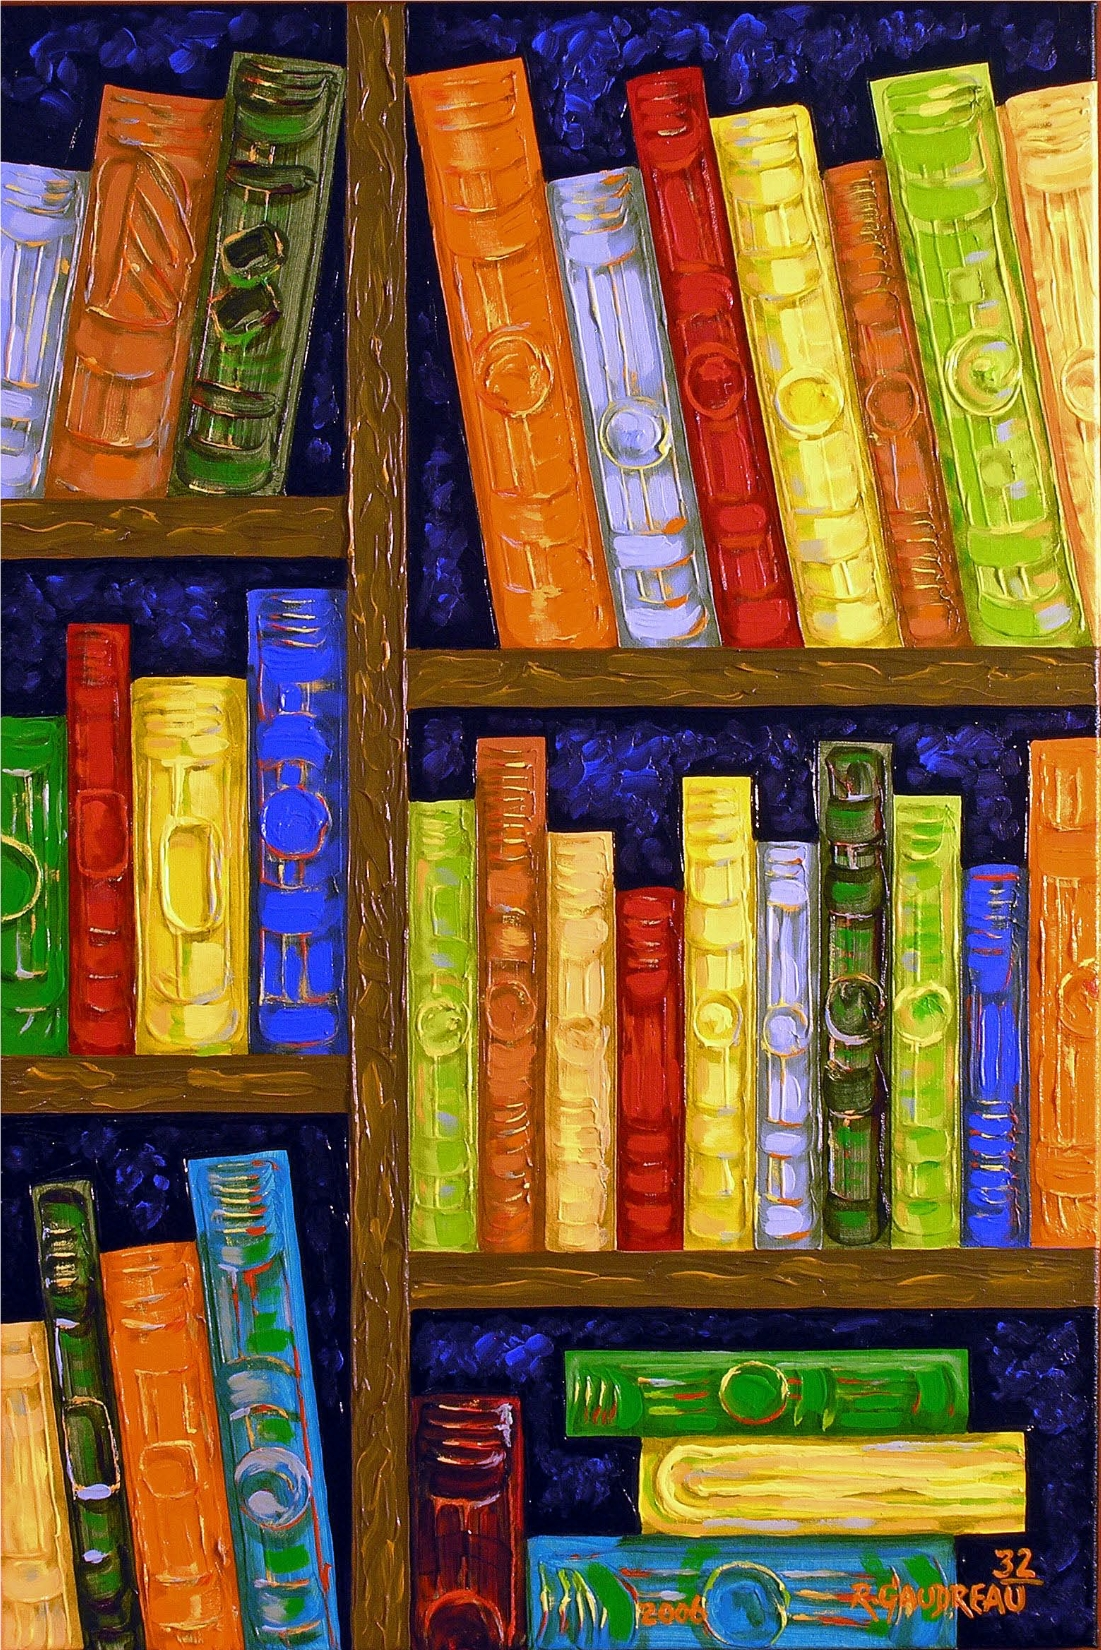 32  Books 2006 oil on canvas 36 x 24 inches